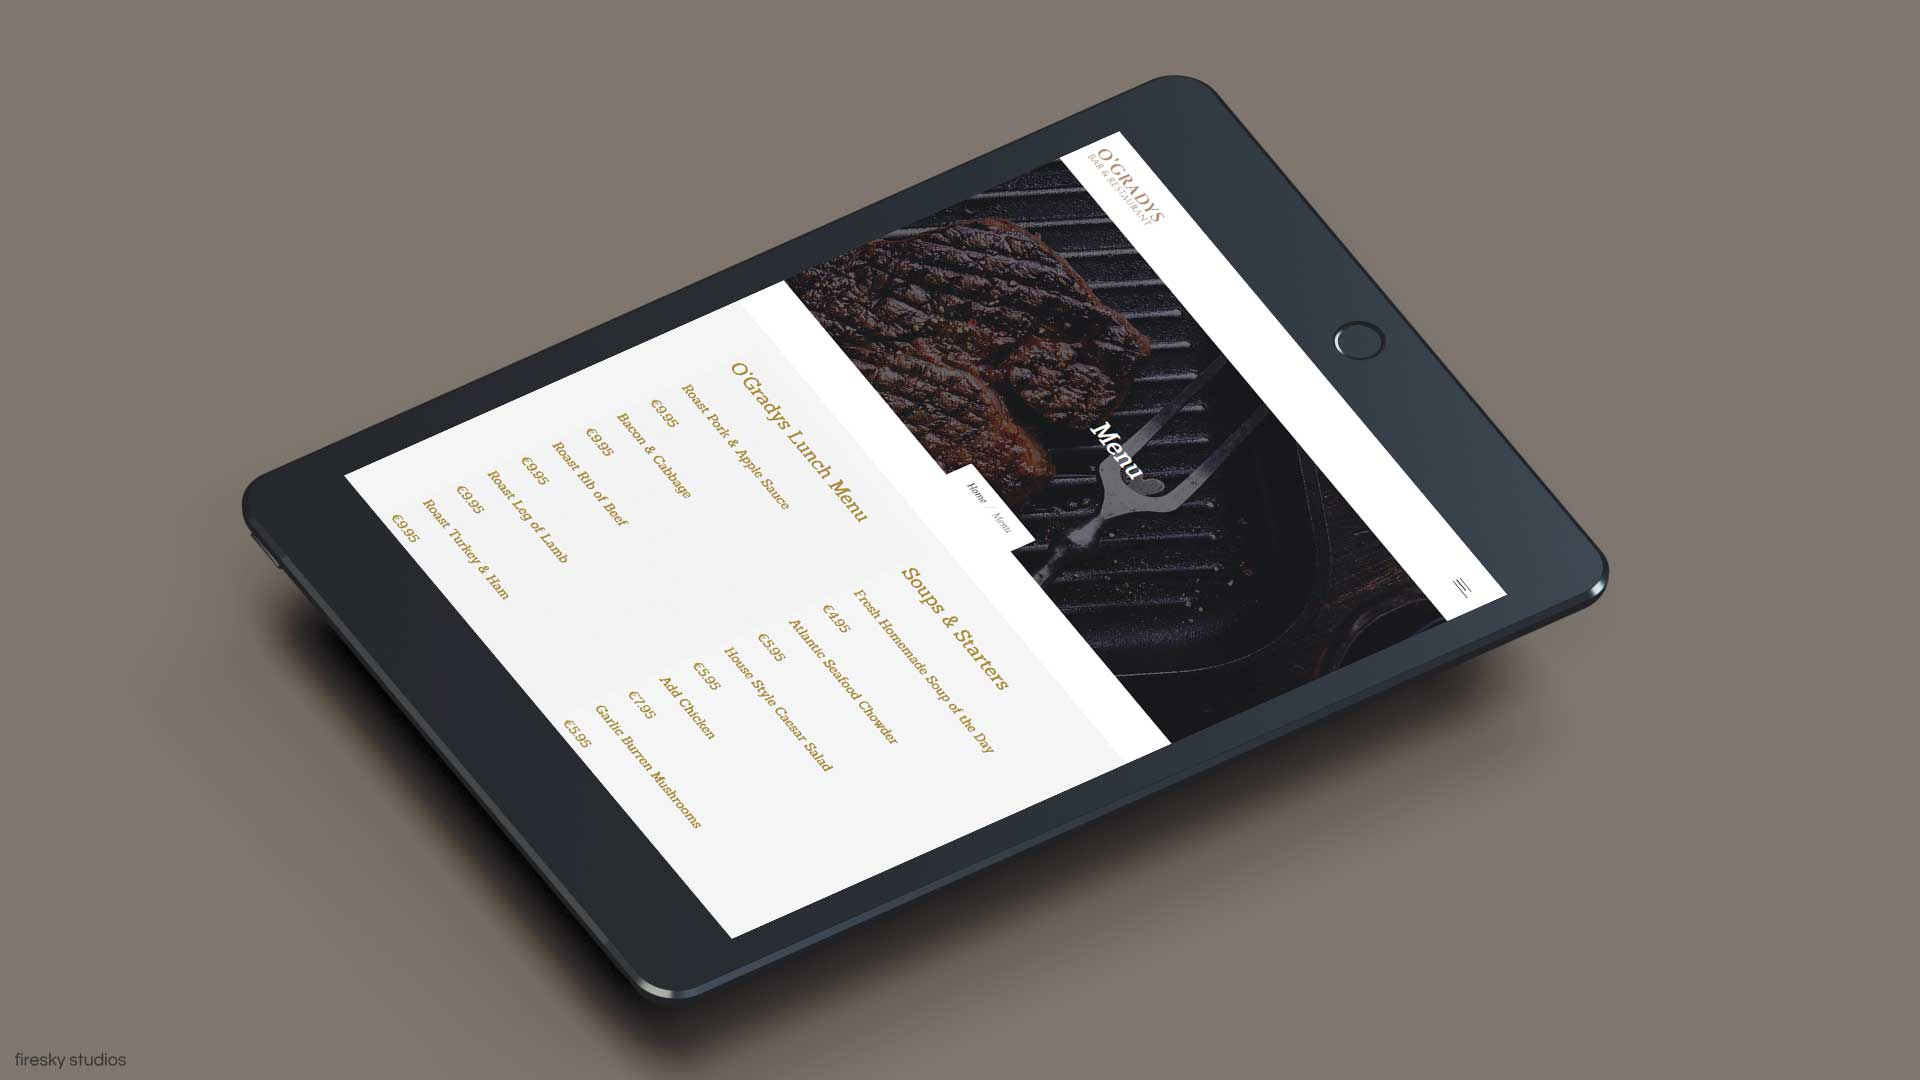 restaurant-menu-tablet